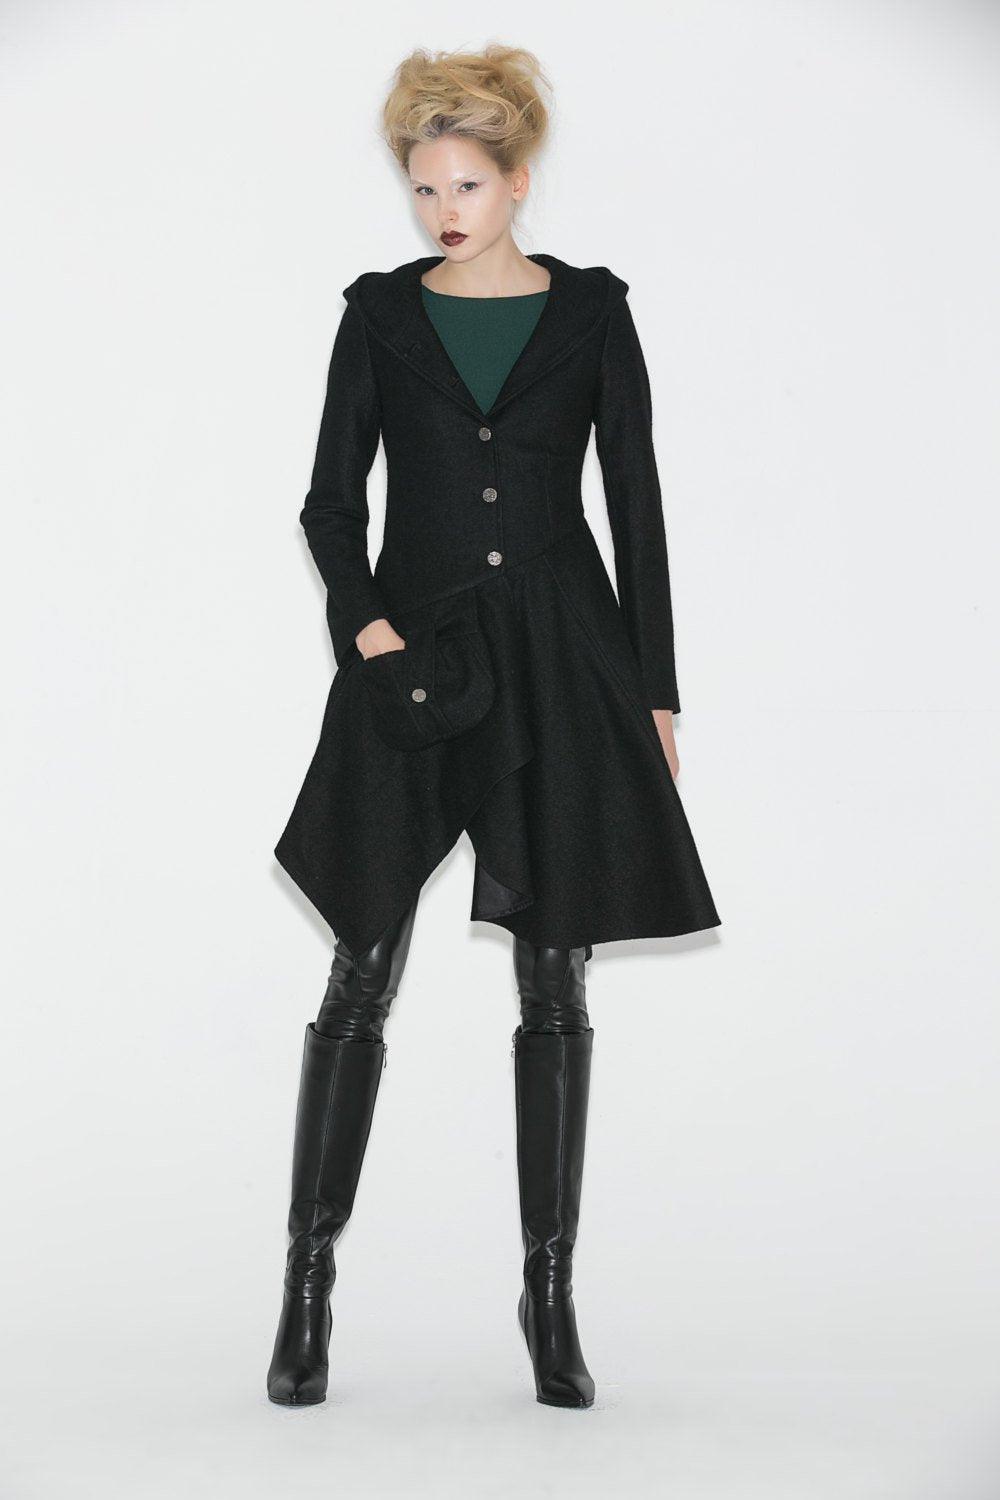 Black Swing Coat - Contemporary Unique Design Winter Jacket with Pixie Rag Hemline and Large Front Pocket C671